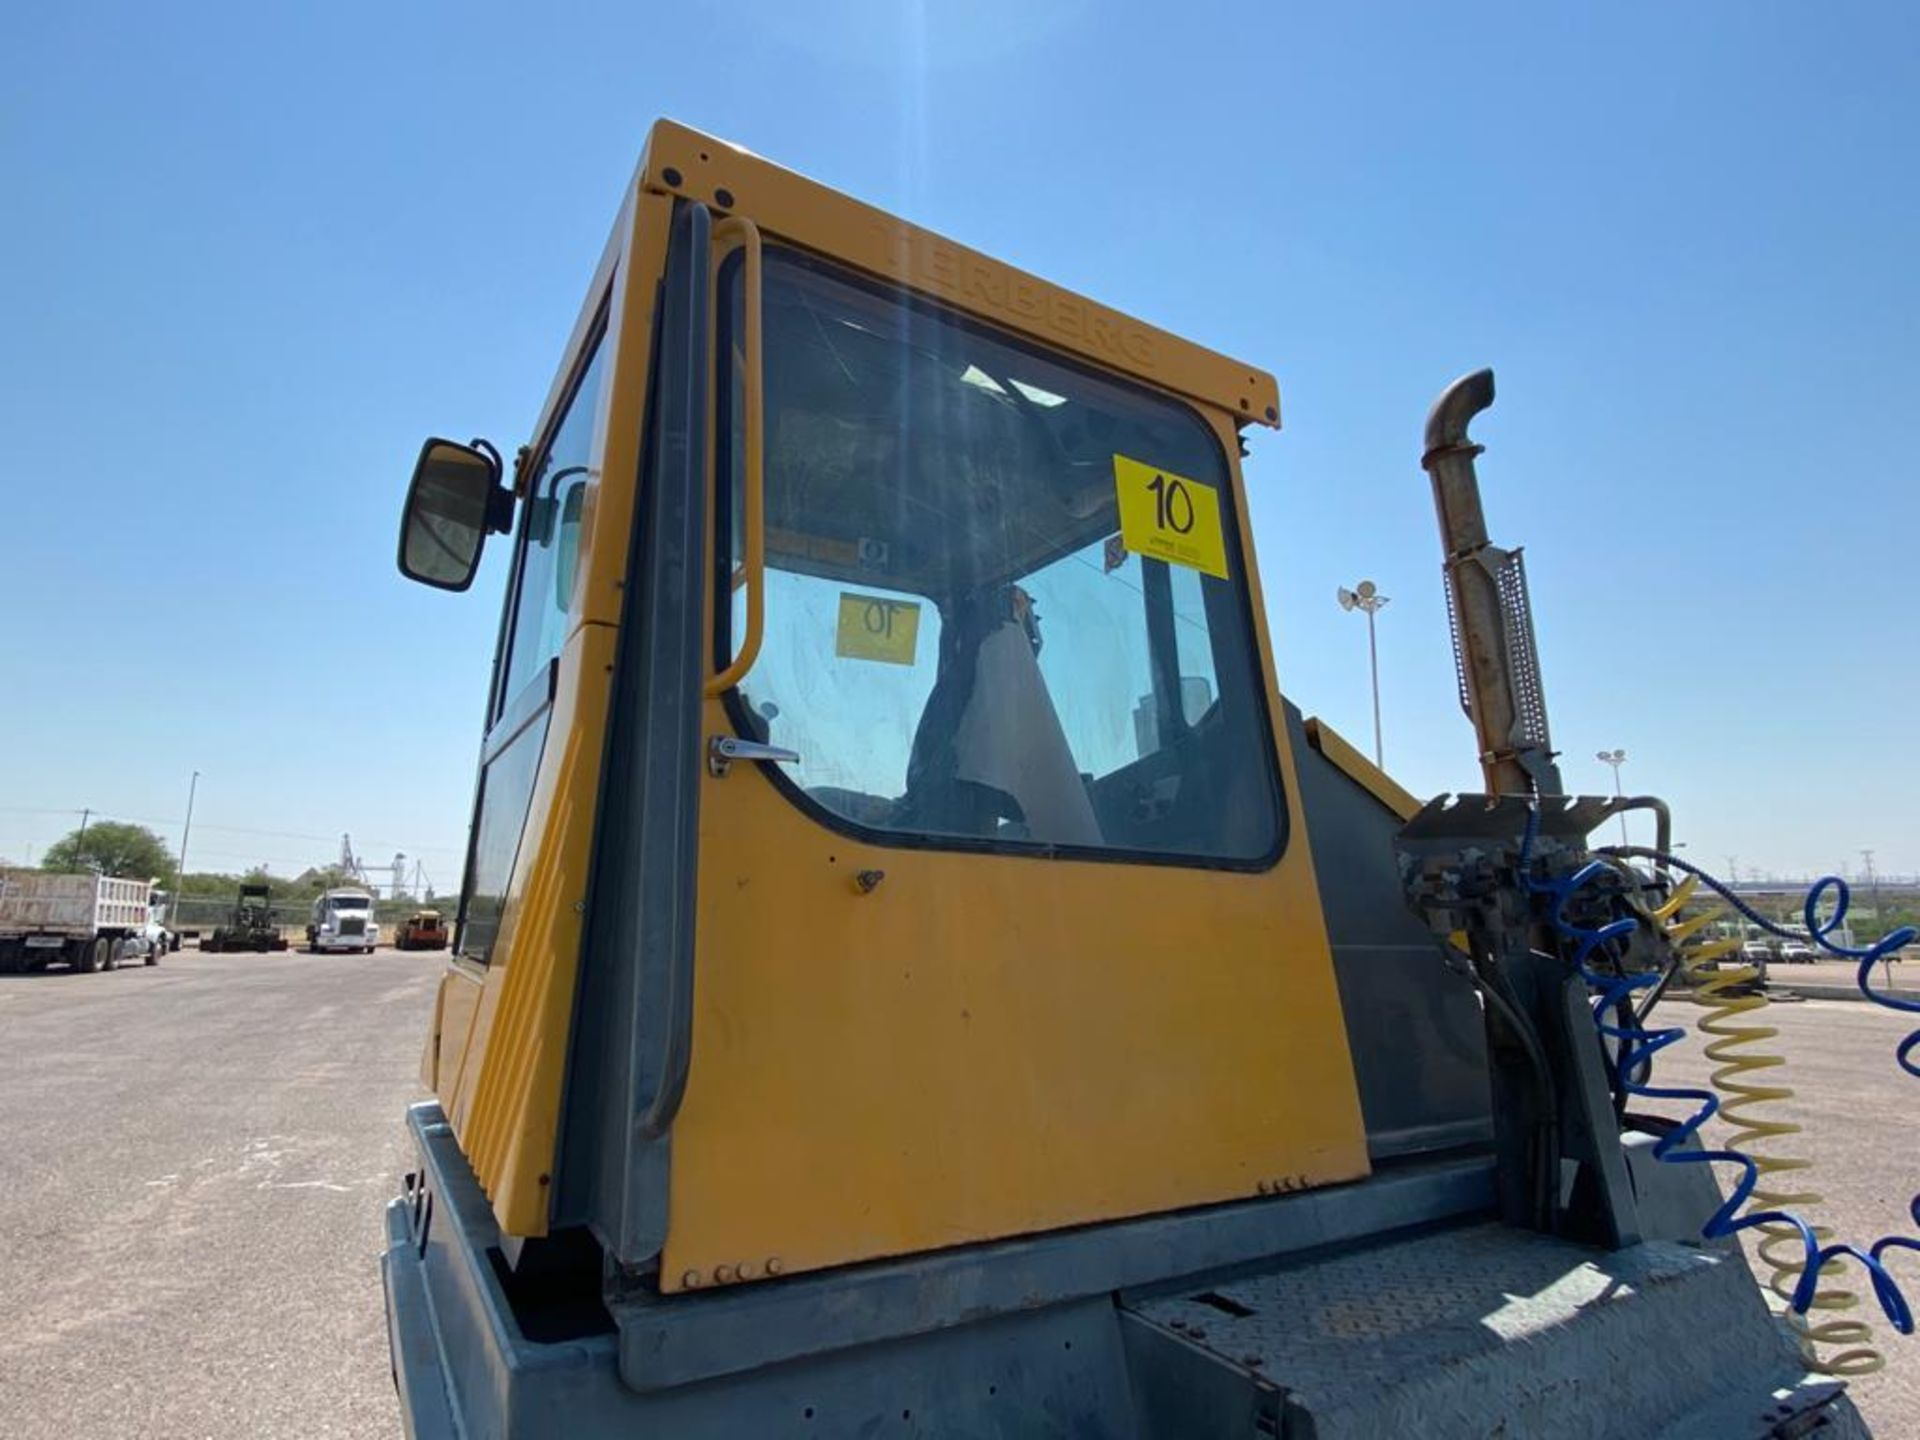 Terberg Capacity 2002 Terminal Tractor, automatic transmissio - Image 12 of 28